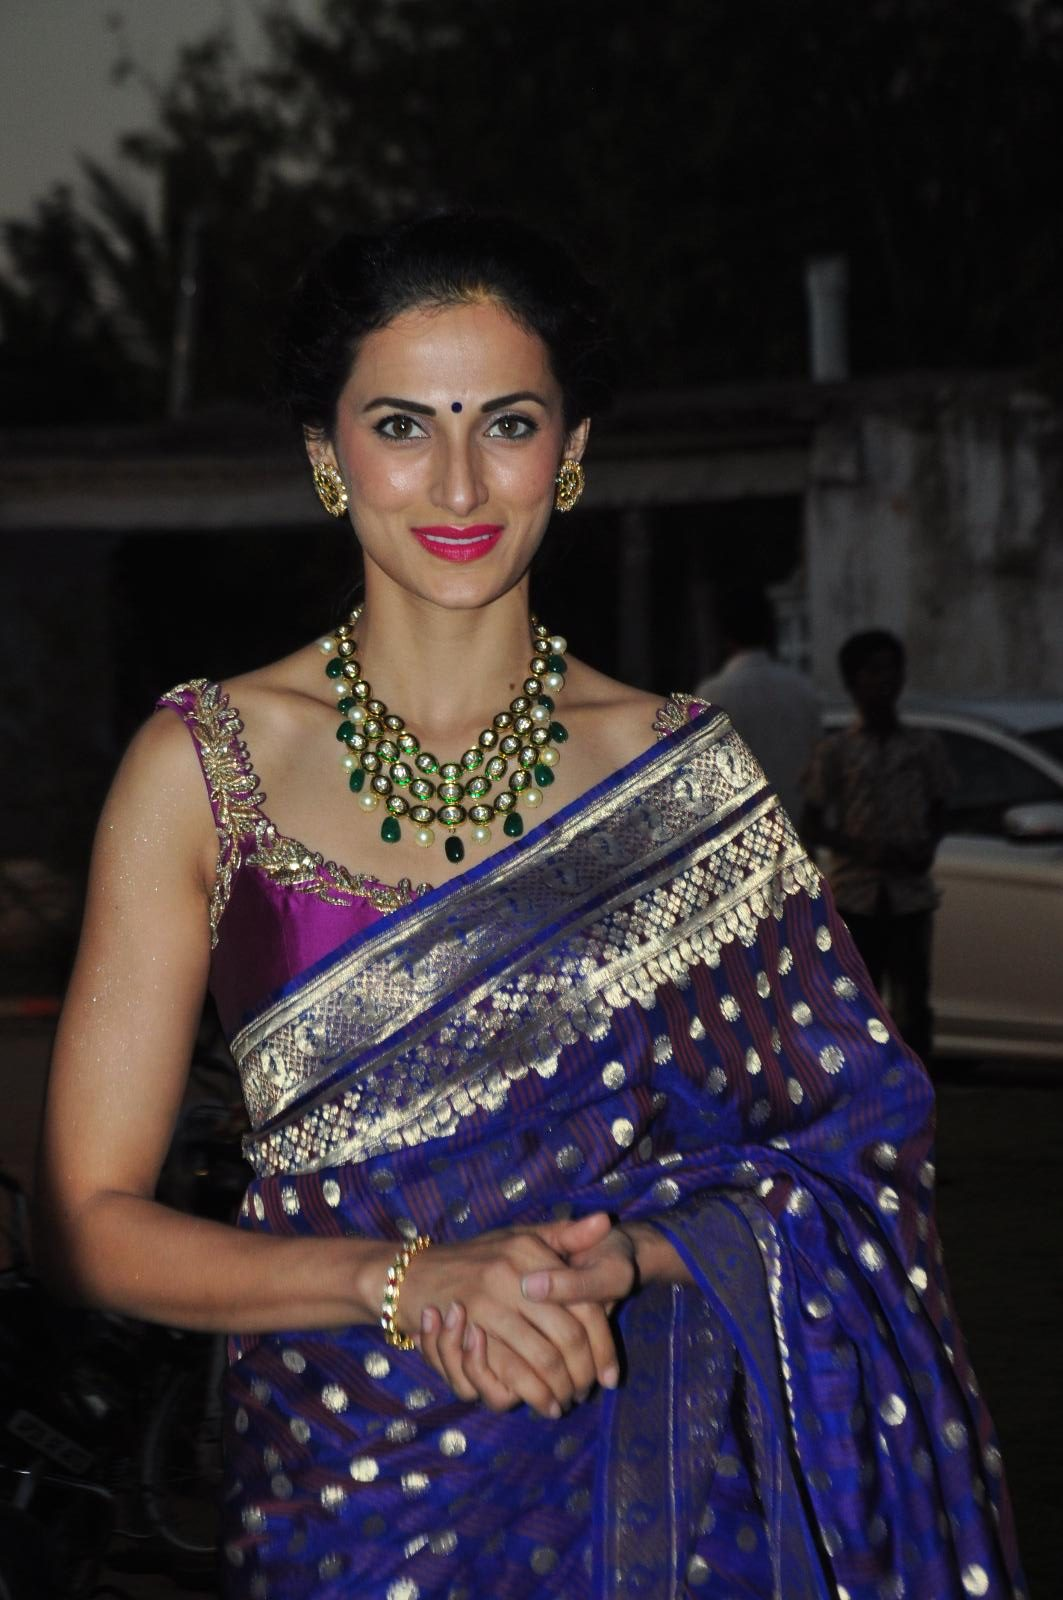 shilpa reddy Brand New Photo Stills of Beautiful Shilpa Reddy | Fashion | Modelling Shilpa Reddy 130 e1485256621845